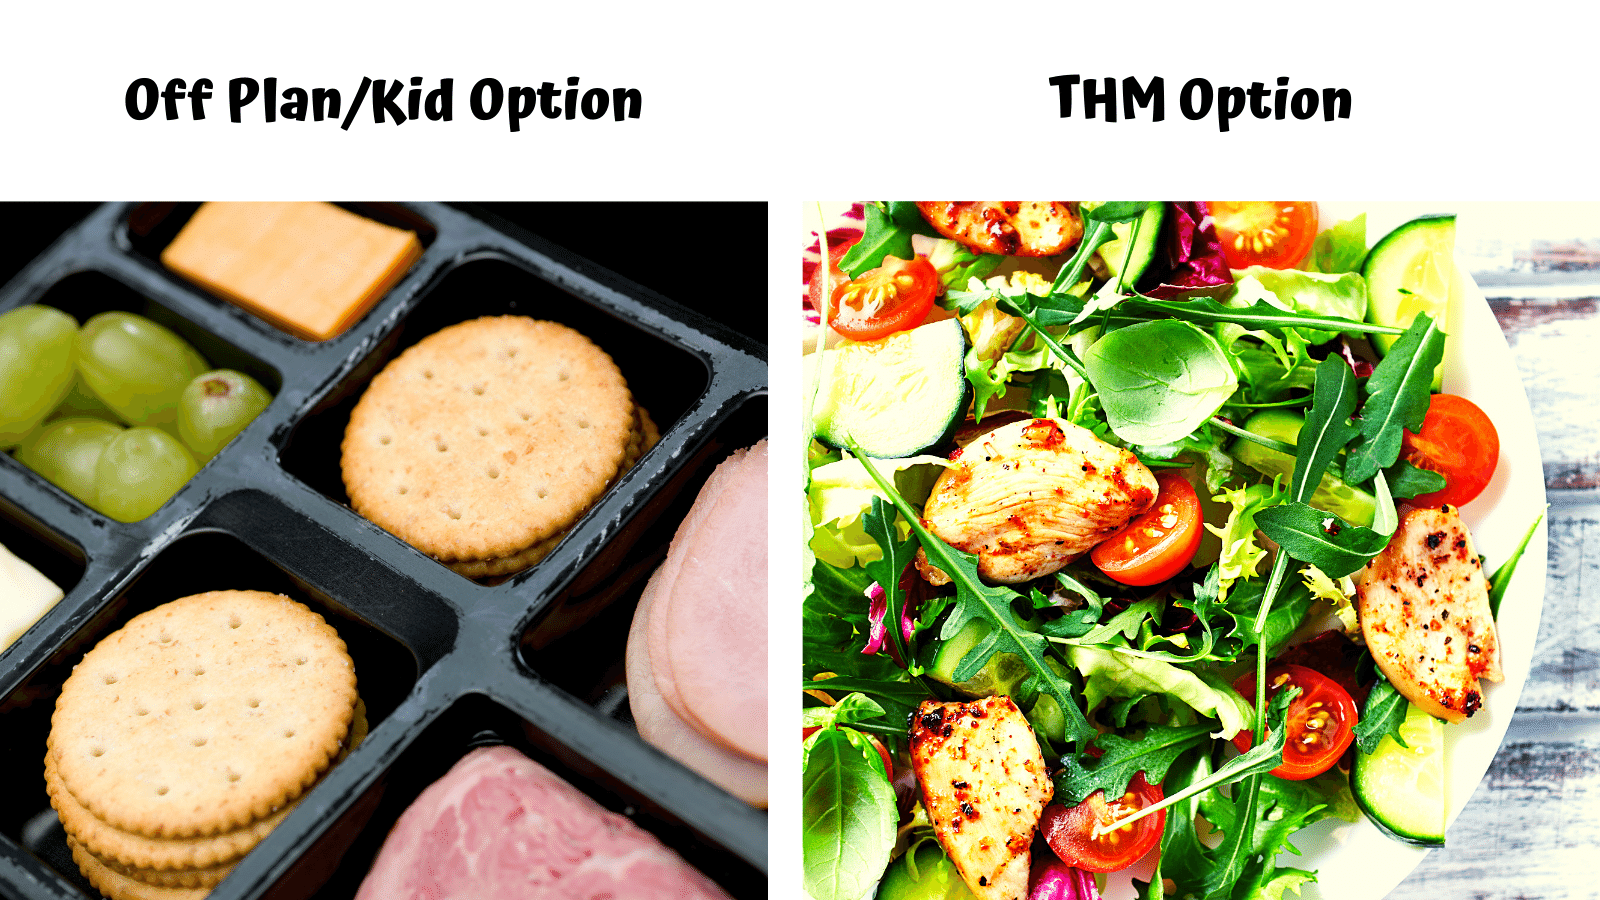 Salad Bar 2 ways - THM On Plan & Family option